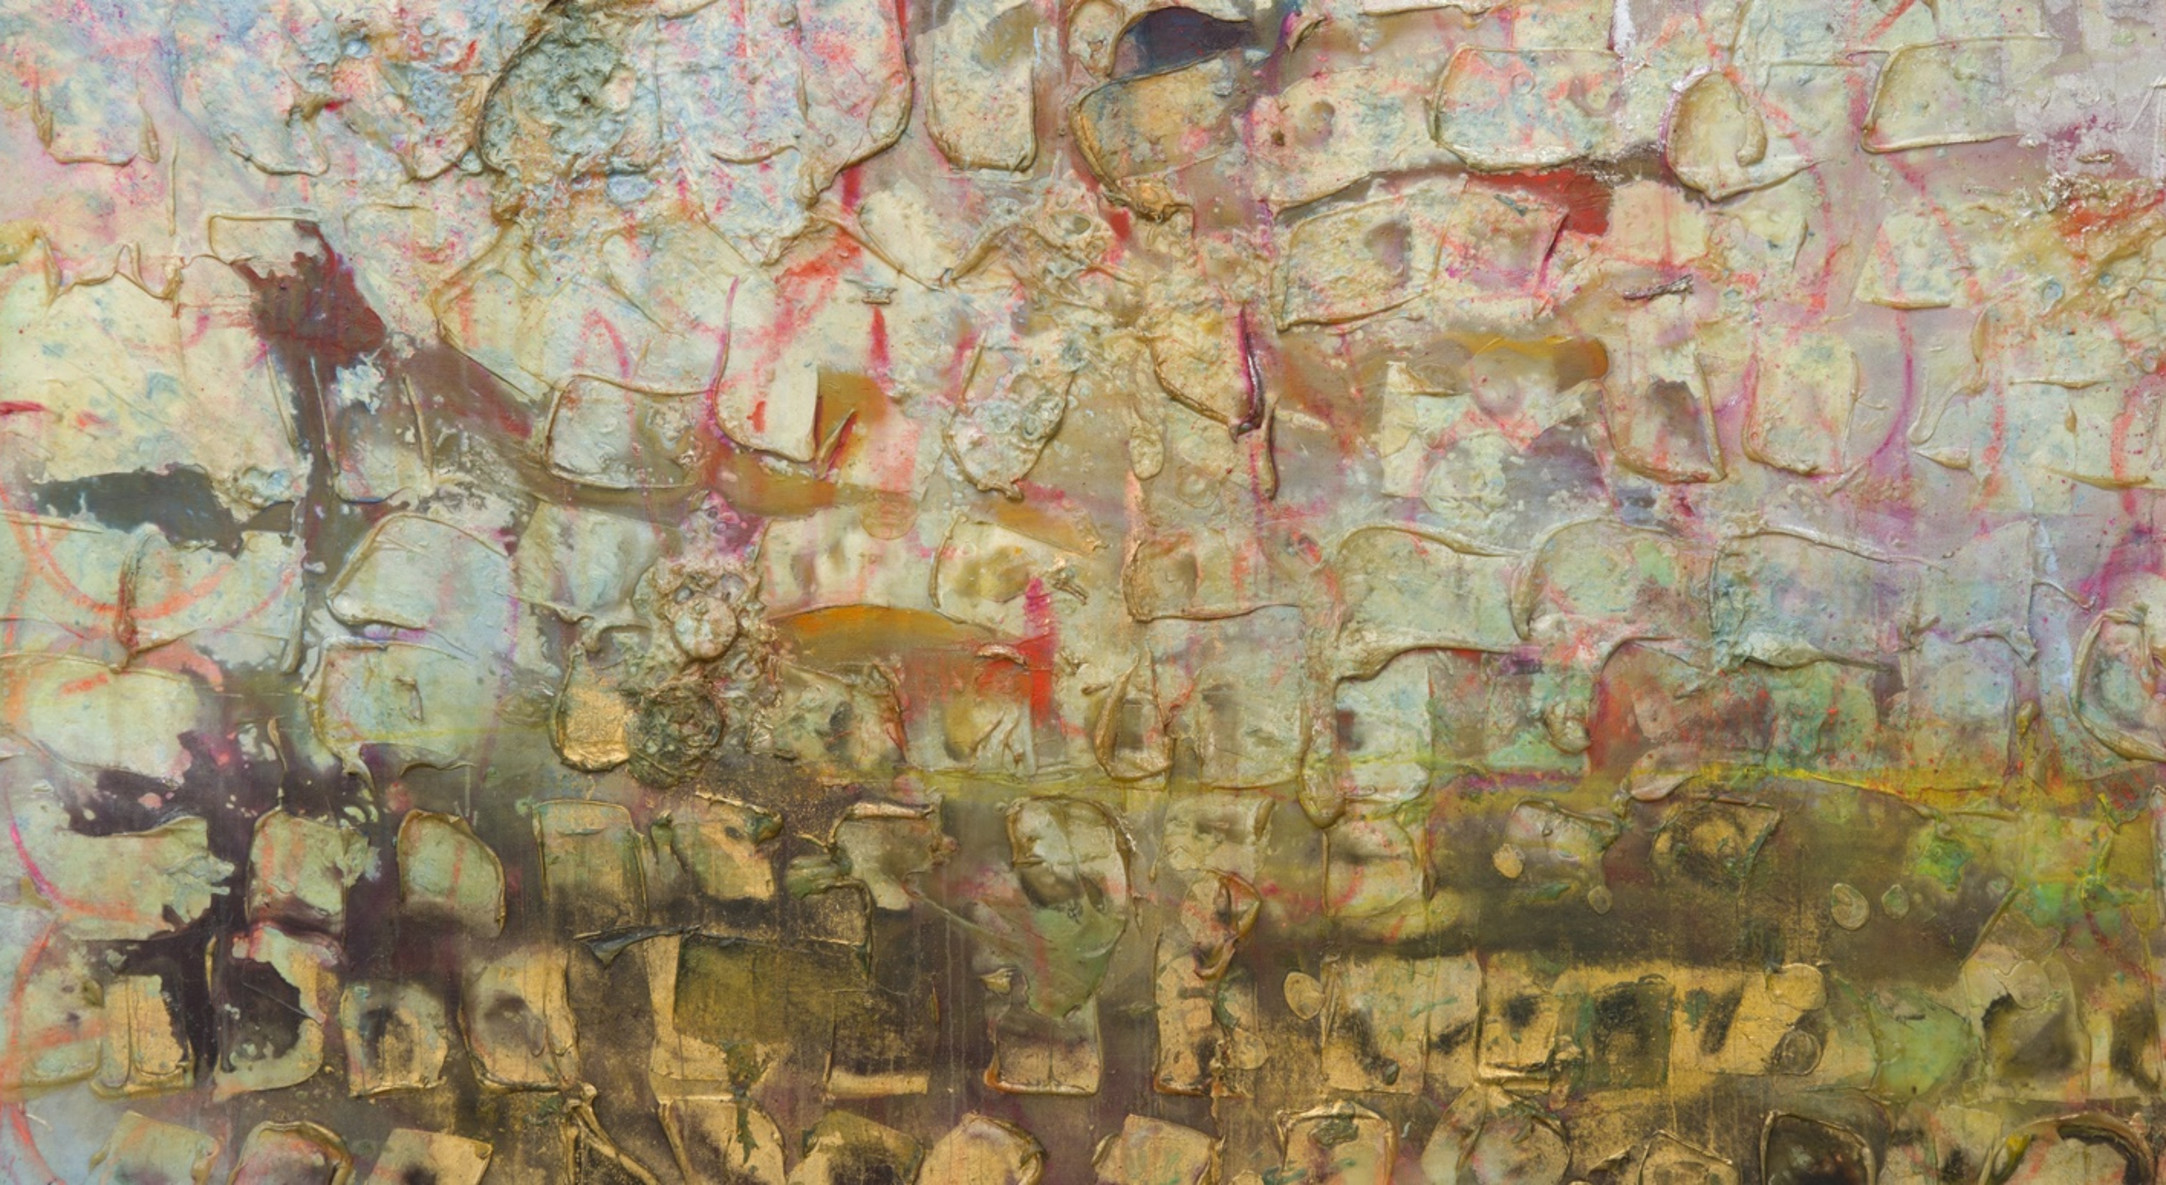 Detail of Frank Bowling, Fishes, Wishes and Uncle Jack, 1989, Acrylic on canvas, 180.5 x 227.5 cm, 71 1/8 x 89 5/8 in, Framed: 186.2 x 233.2 x 4.4 cm, 73 1/4 x 91 3/4 x 1 3/4 in